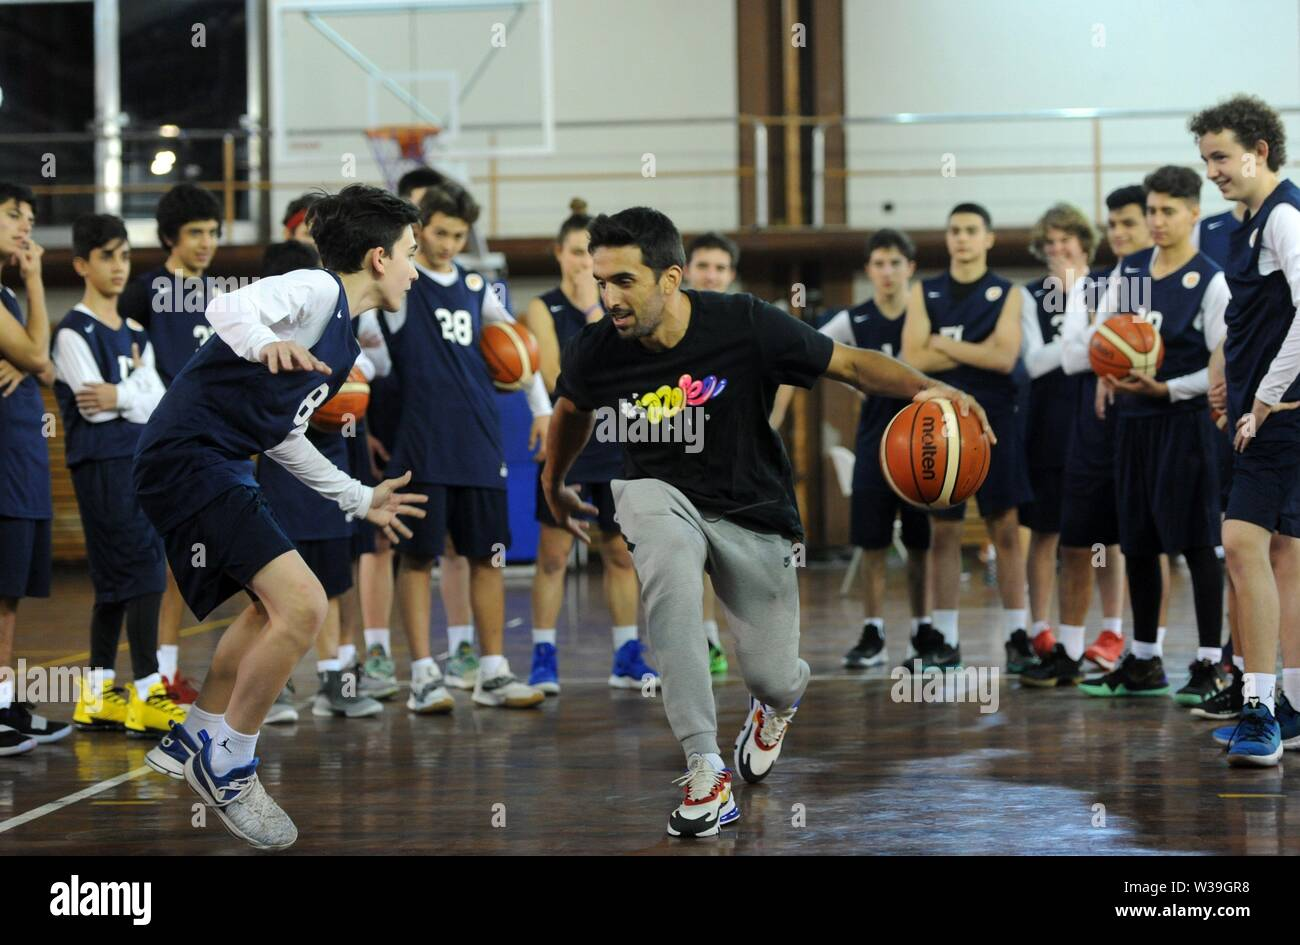 Buenos Aires, Argentina. 14th July, 2019. Facu Campazzo, base of Real Madrid, teaches young basketball promises at the National High Performance Sports Center (CENARD) during a day of 'ProCamp' in Buenos Aires, Argentina, 13 July 2019. Facundo Campazzo and Nicolás Laprovíttola, members of the Argentine basketball team and future Real Madrid teammates in the next season of the Endesa League, made the first of the two days of 'ProCamp' for young promises. Credit: Enrique Garcia Medina/EFE/Alamy Live News - Stock Image